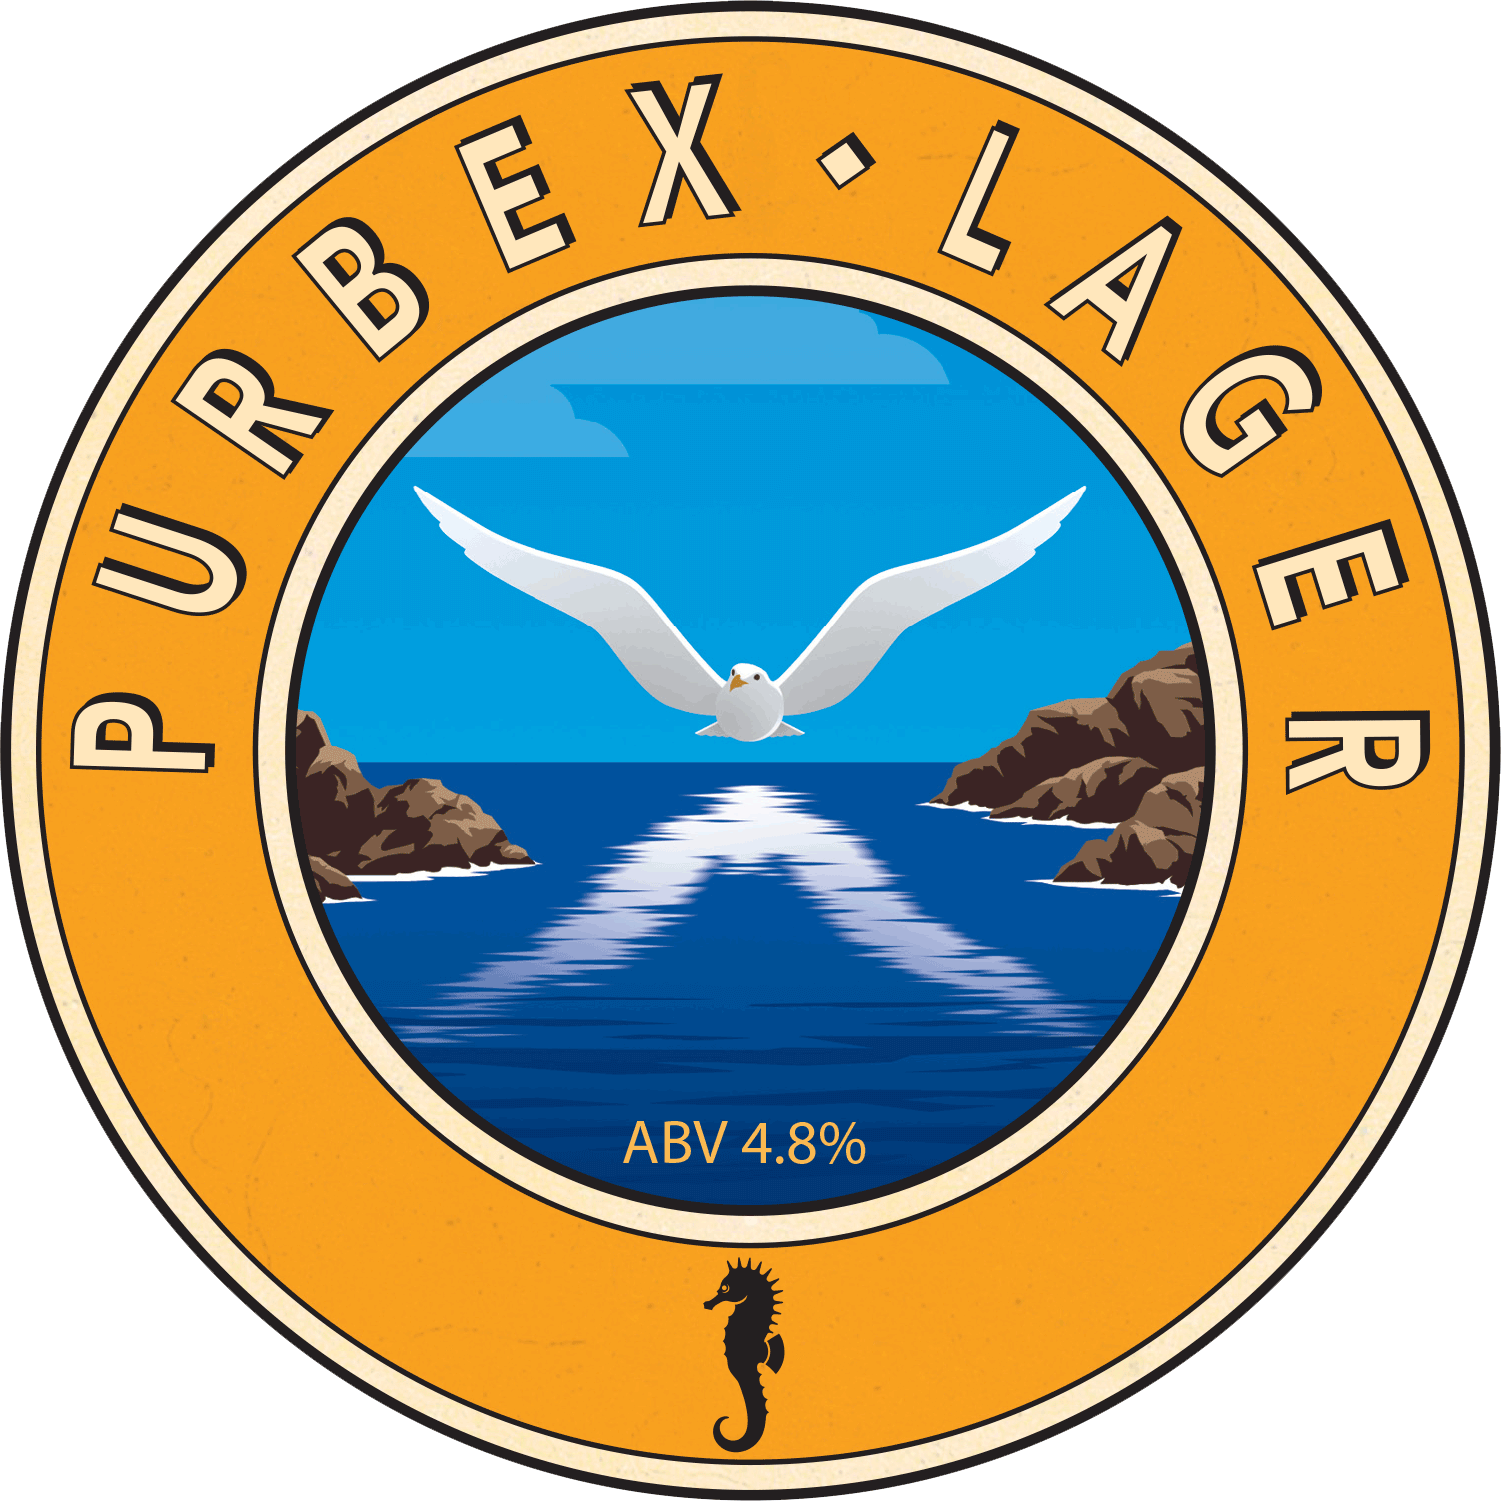 Isle of Purbeck Brewery Purbex Lager pumpclip PNG